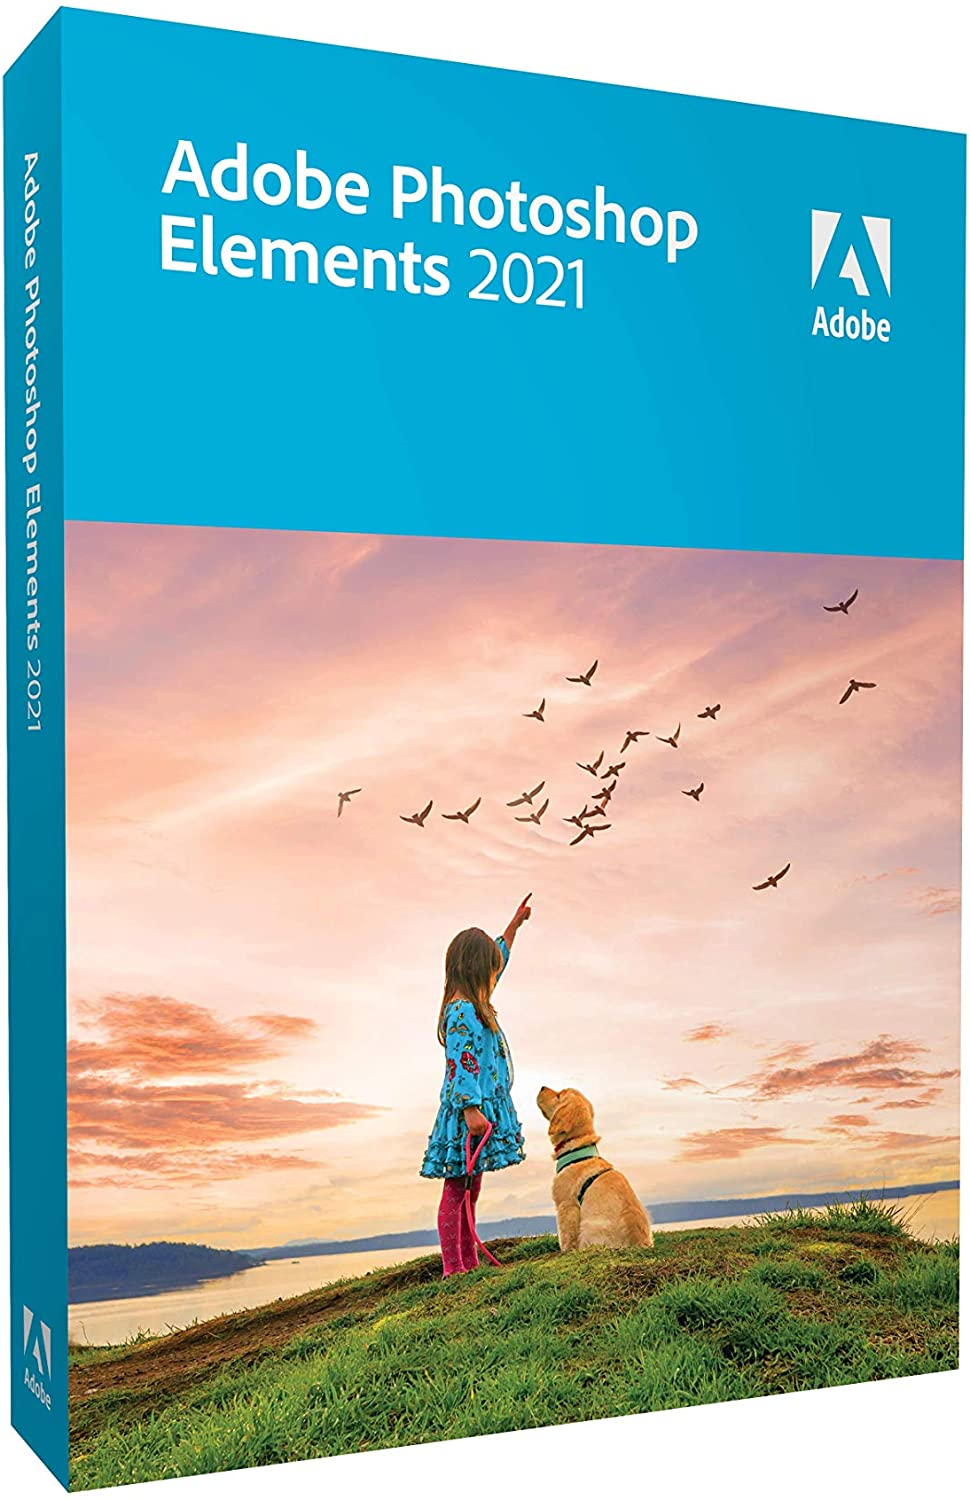 Adobe Photoshop Elements 2021 Discount Coupon Code